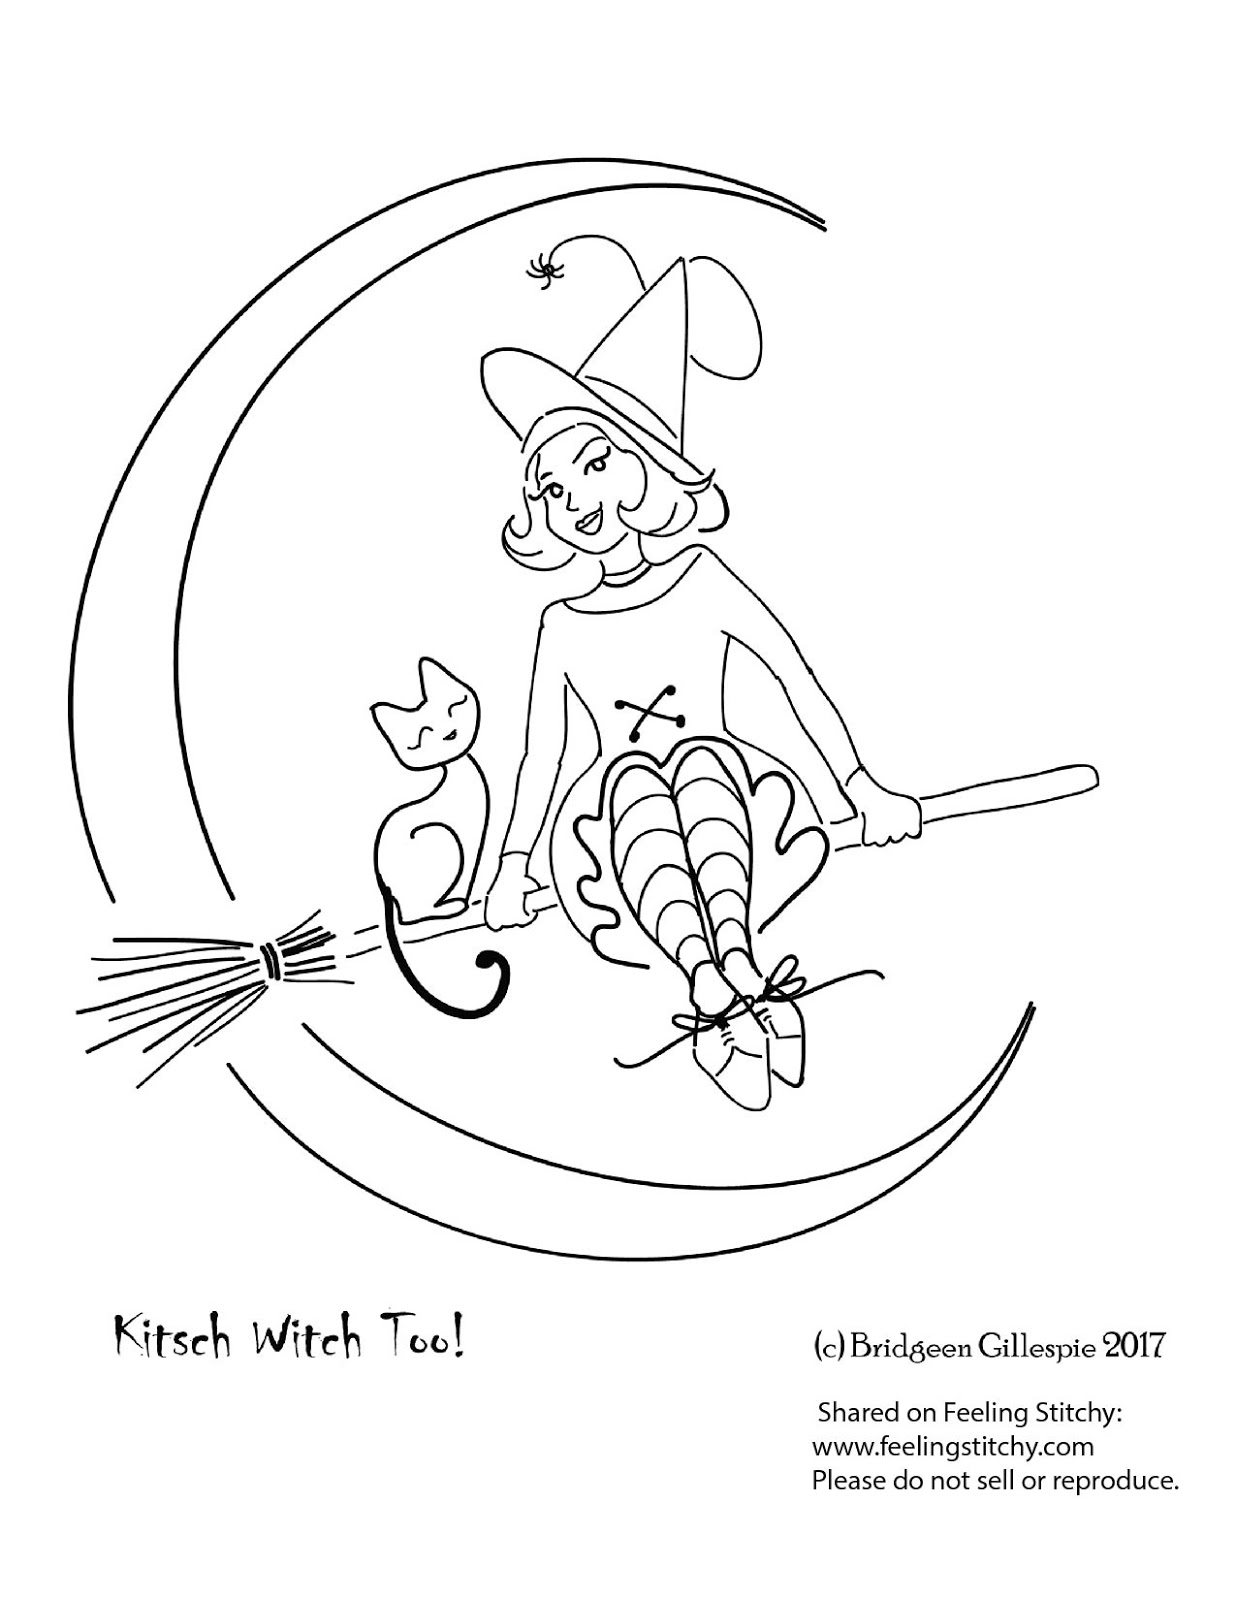 Kitsch Witch Too free Halloween pattern by Bridgeen Gillespie for Feeling Stitchy